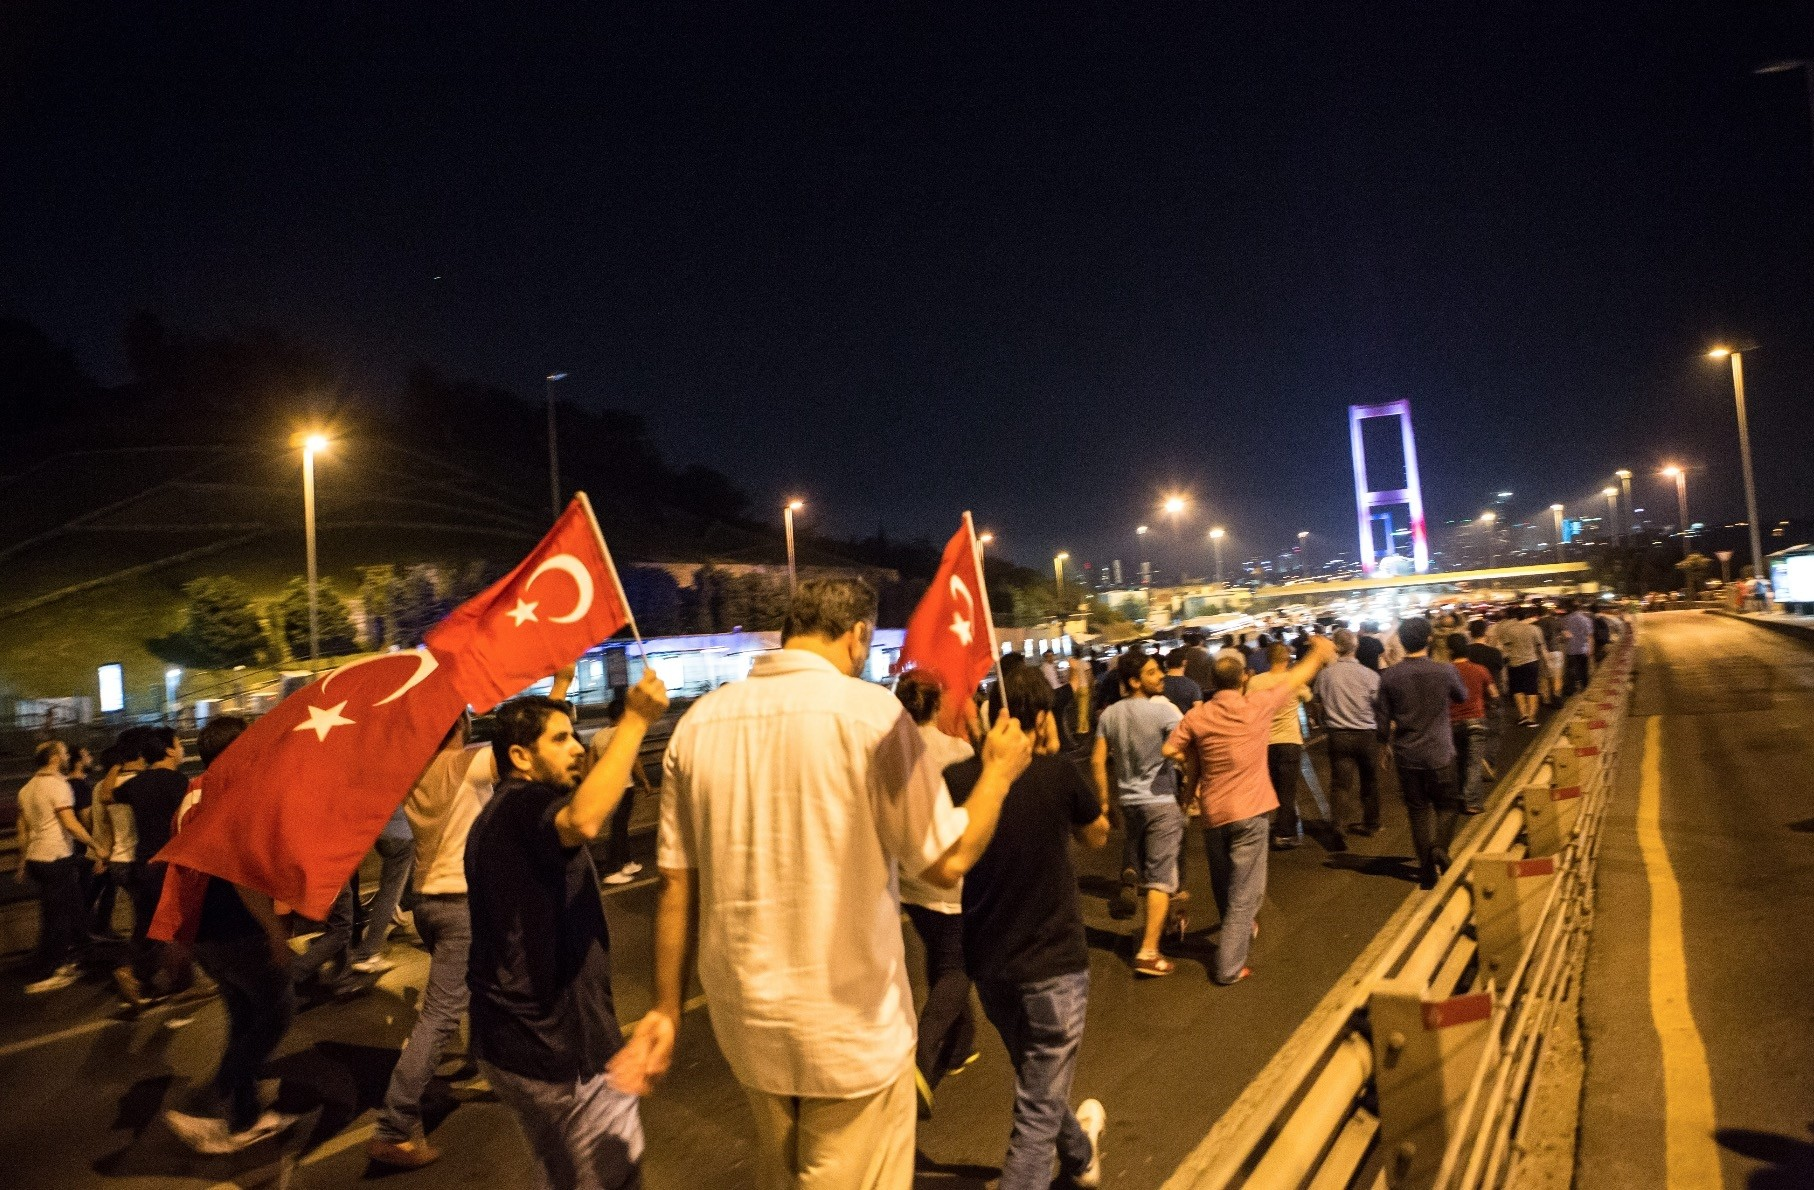 People holding Turkish flags march to the Bosporus Bridge in Istanbul on July 15, 2016.